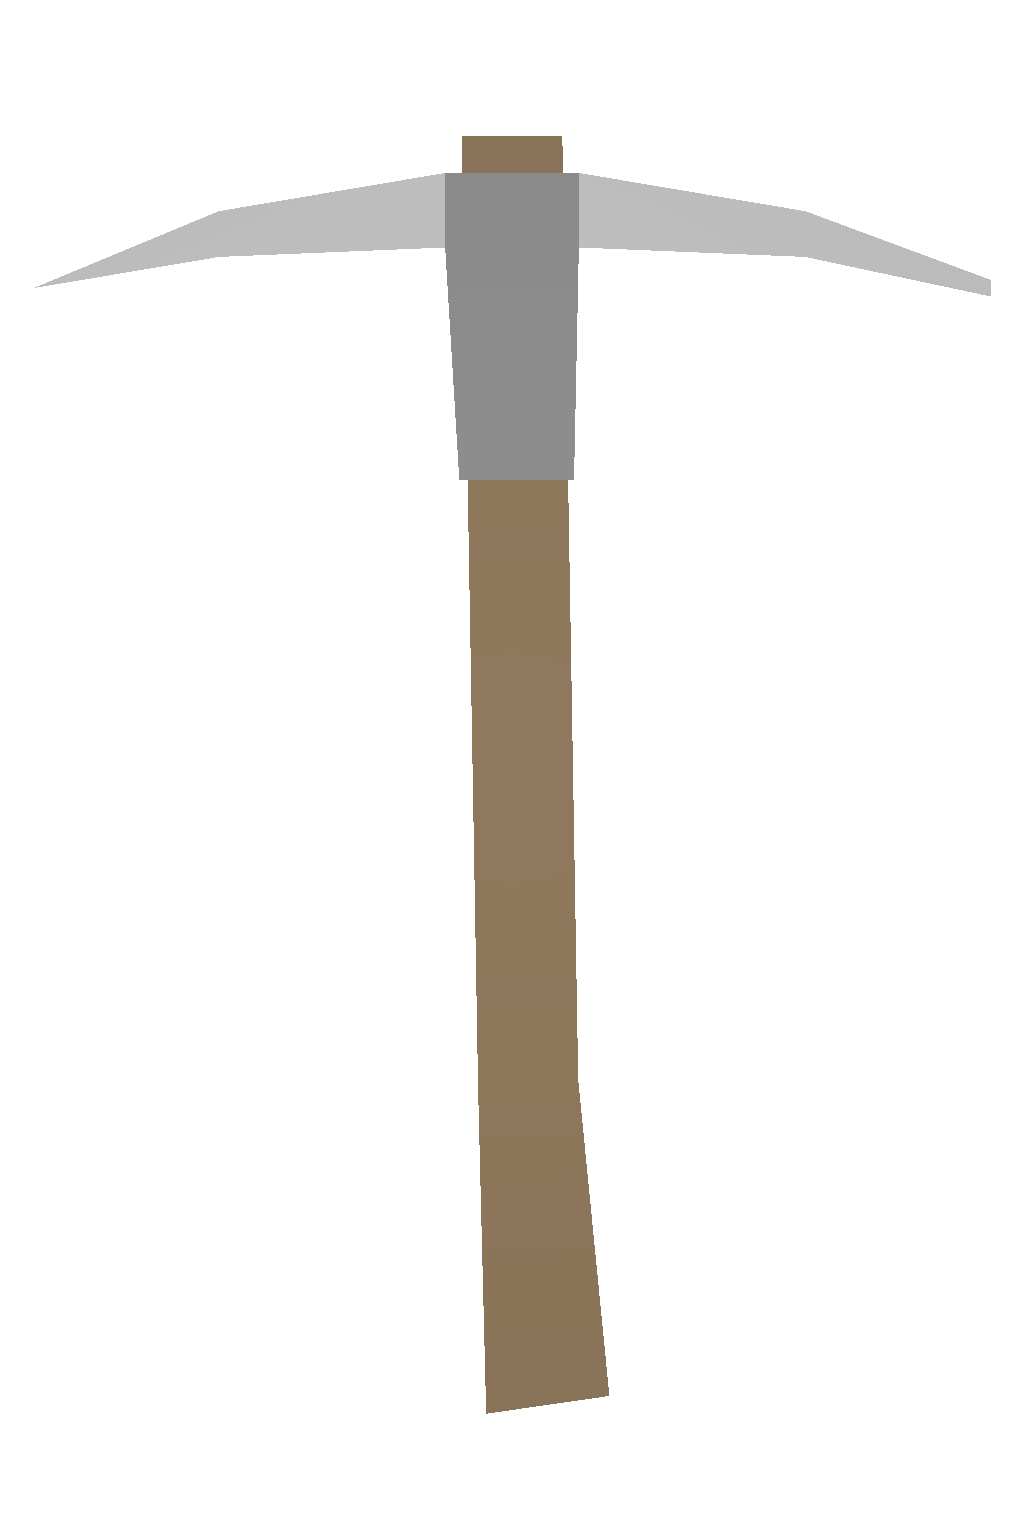 Picture of Unturned Item: Pickaxe